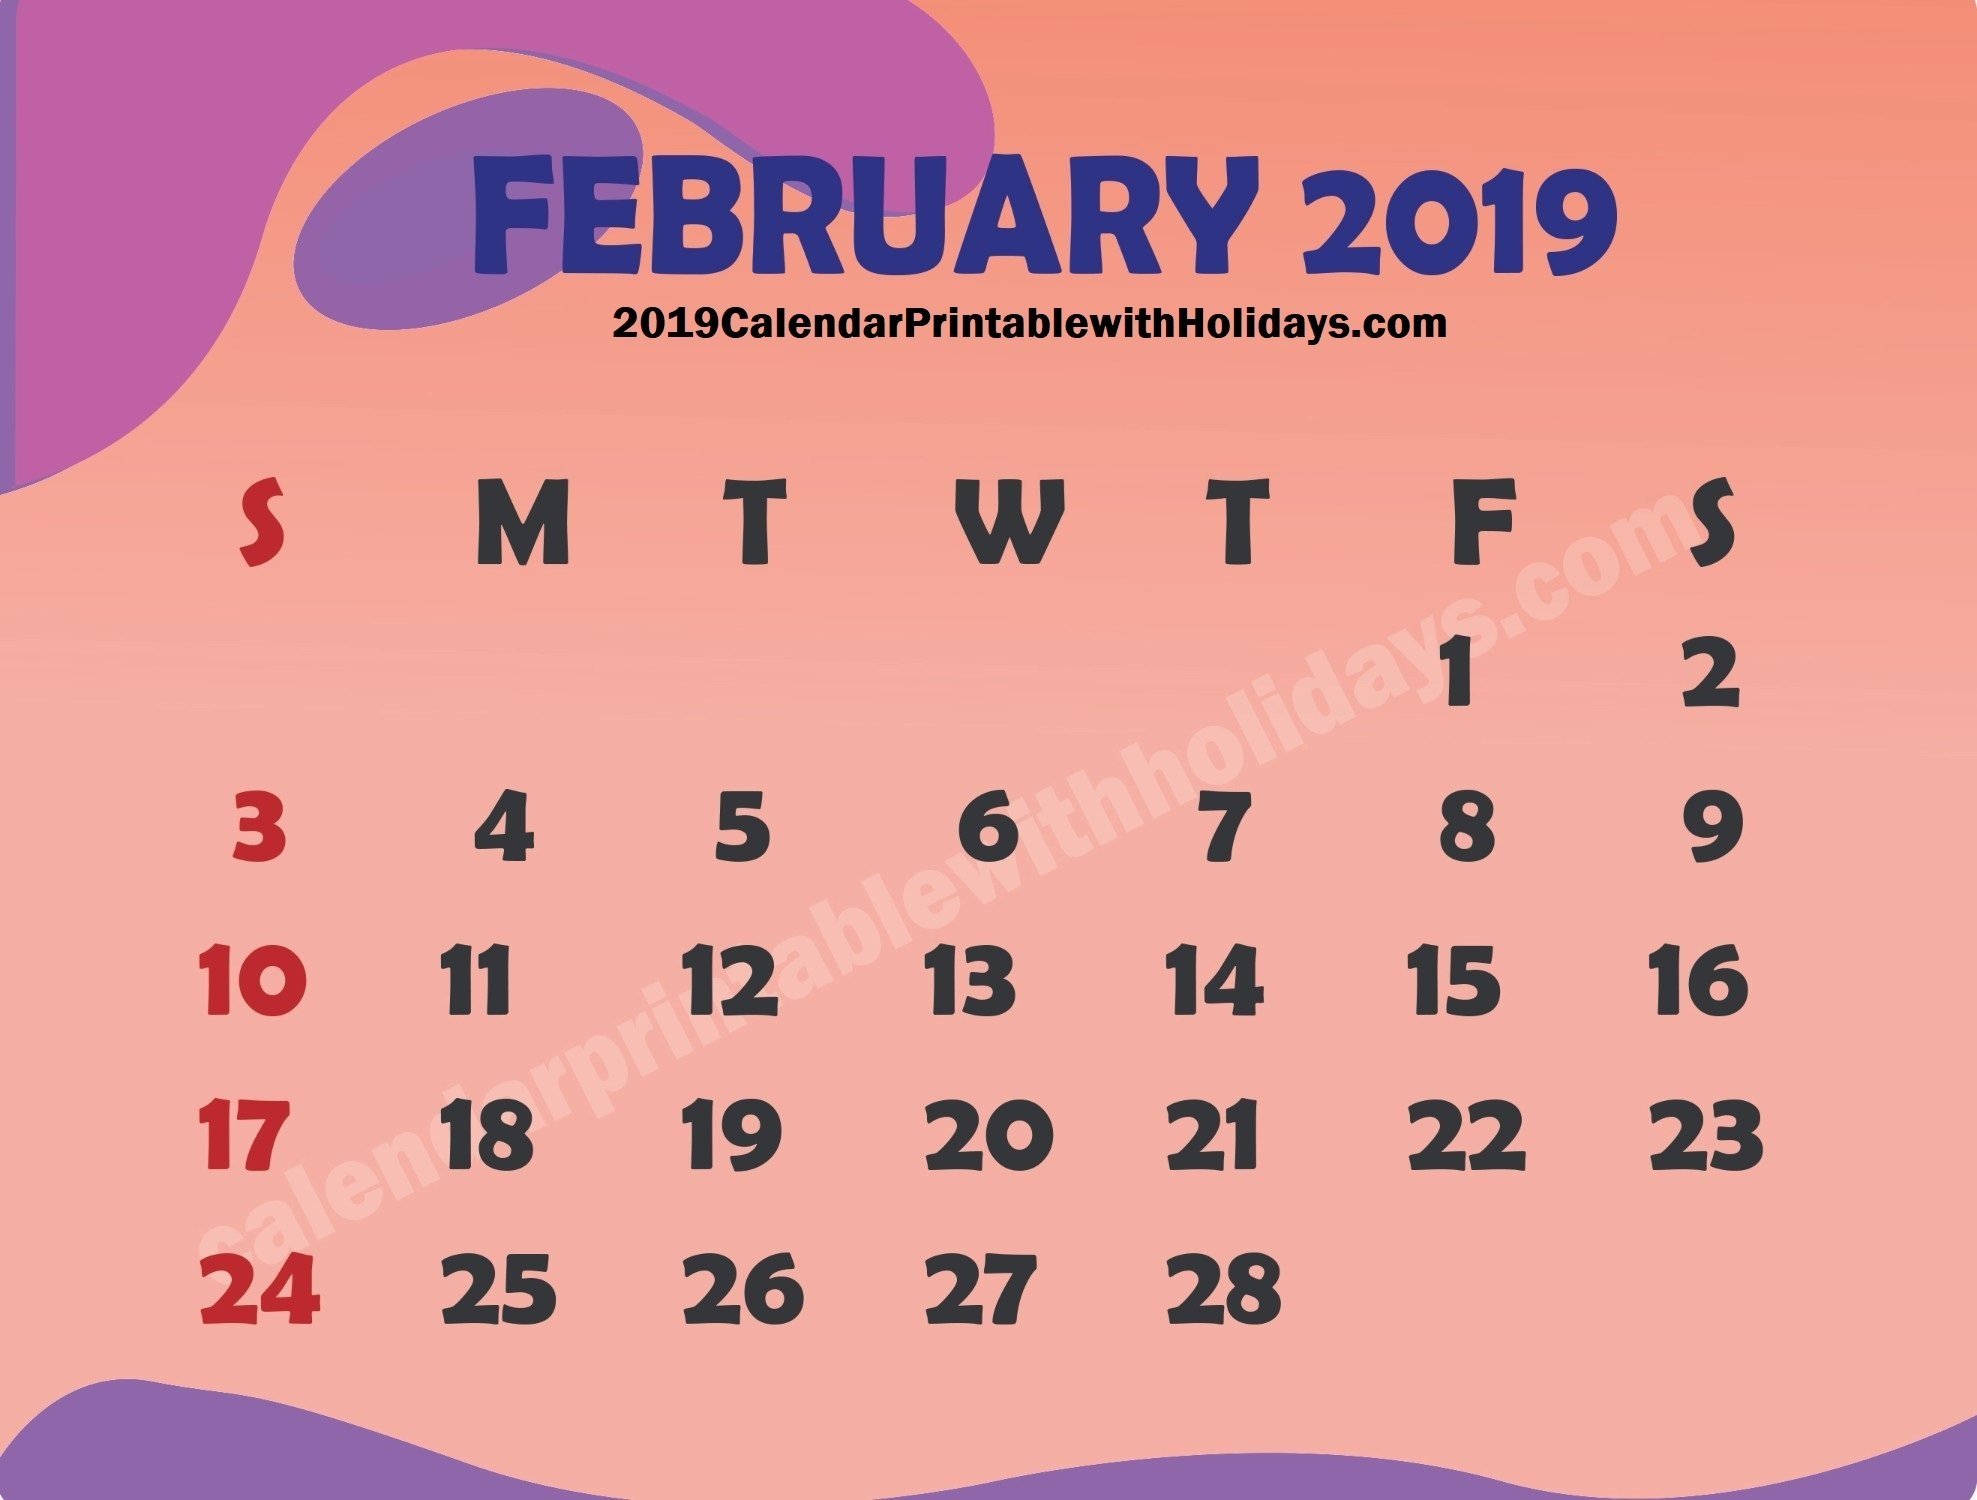 February 2019 Calendar - 2019 Calendar Printable With Holidays Template Feb 9 2019 Calendar